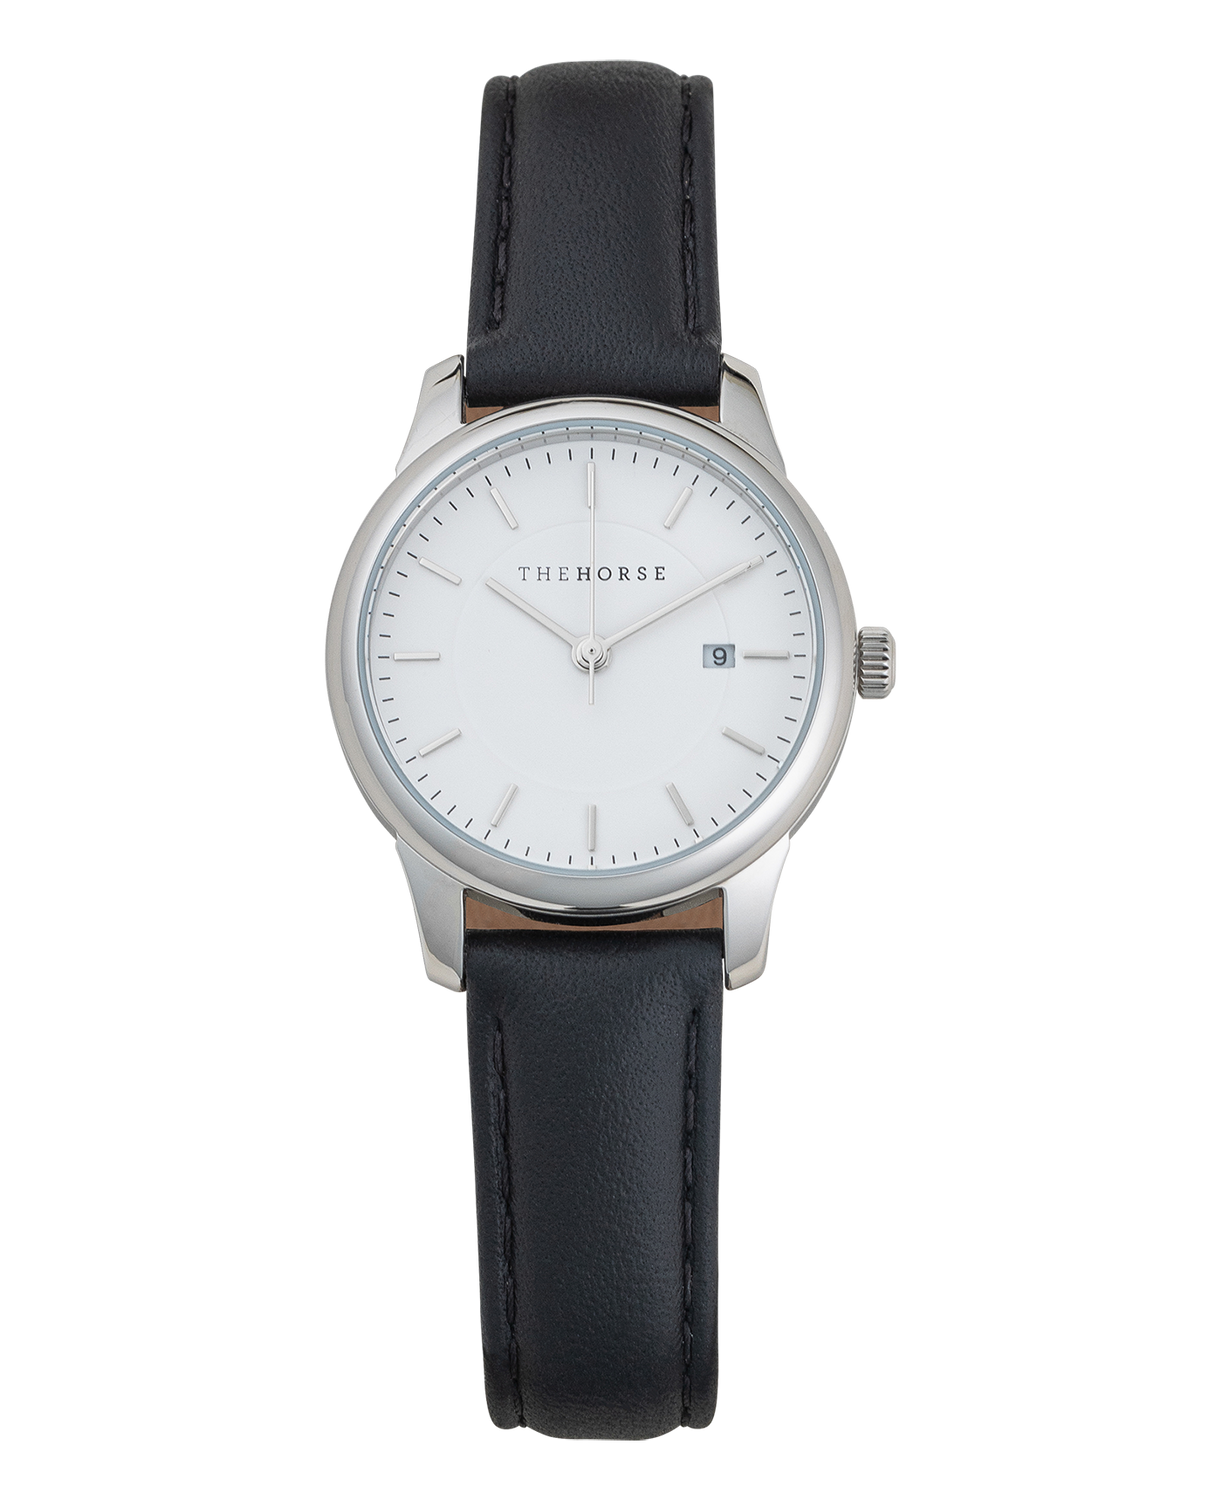 IG5 The Horse Ivy Girl Ladies Watch with Date Polished Silver Case / White Dial/ Black Leather. Compendium Design Store, Fremantle. AfterPay, ZipPay accepted.